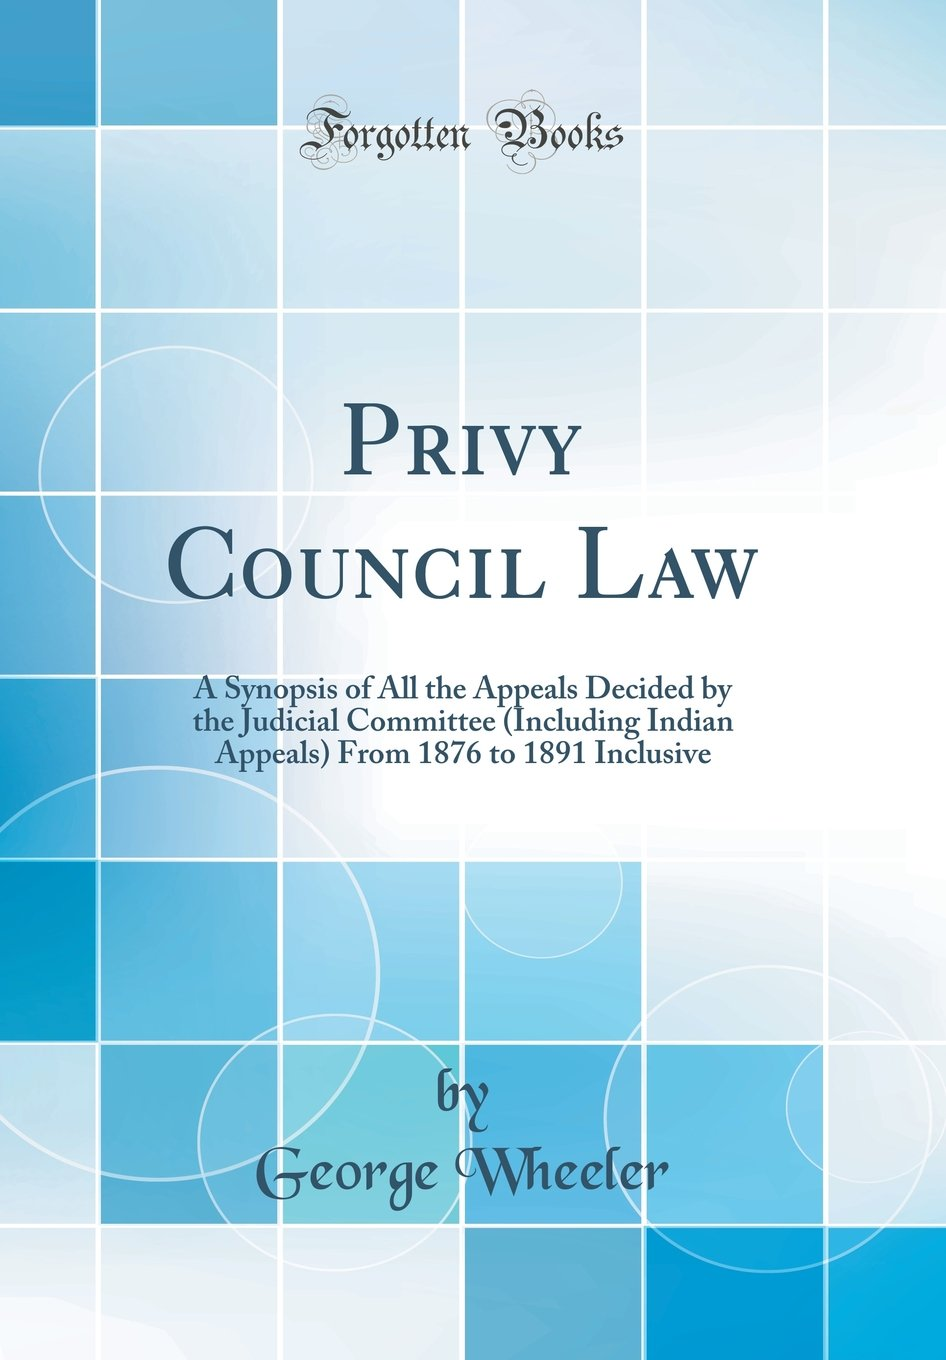 Privy Council Law: A Synopsis of All the Appeals Decided by the Judicial Committee (Including Indian Appeals) from 1876 to 1891 Inclusive (Classic Reprint) ebook